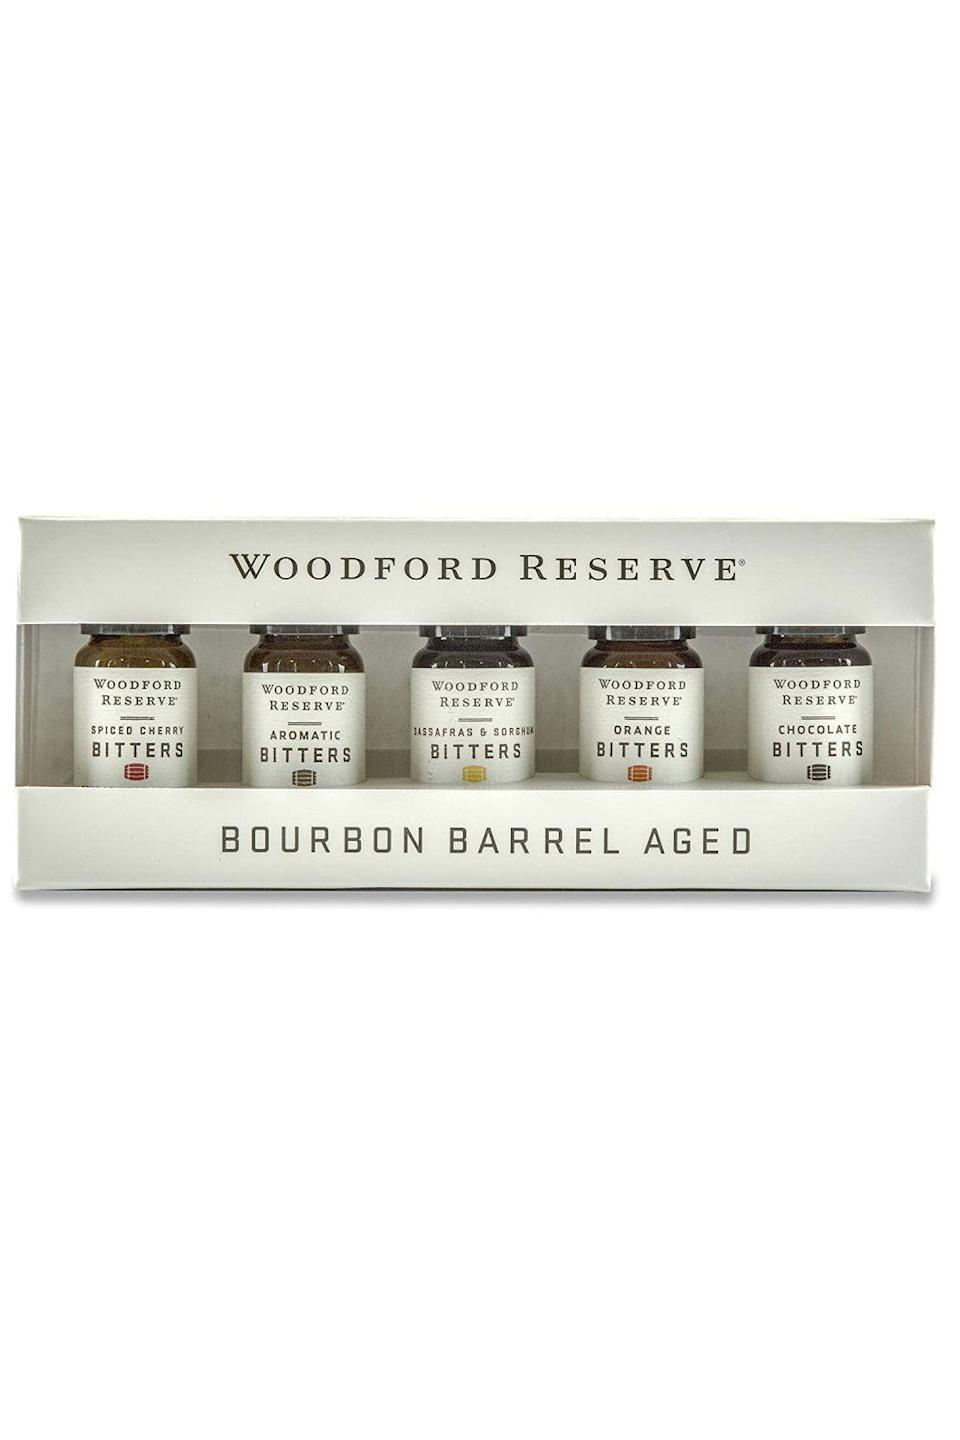 "<p><strong>Woodford Reserve</strong></p><p>amazon.com</p><p><strong>$28.95</strong></p><p><a href=""https://www.amazon.com/dp/B0761YV6GM?tag=syn-yahoo-20&ascsubtag=%5Bartid%7C10049.g.22628672%5Bsrc%7Cyahoo-us"" rel=""nofollow noopener"" target=""_blank"" data-ylk=""slk:Shop Now"" class=""link rapid-noclick-resp"">Shop Now</a></p><p>Does your partner routinely order an old fashioned whenever you two go out for date night? Then theywould absolutely appreciate a set of bitters to show off their own bartending skills at home (lucky you).</p>"